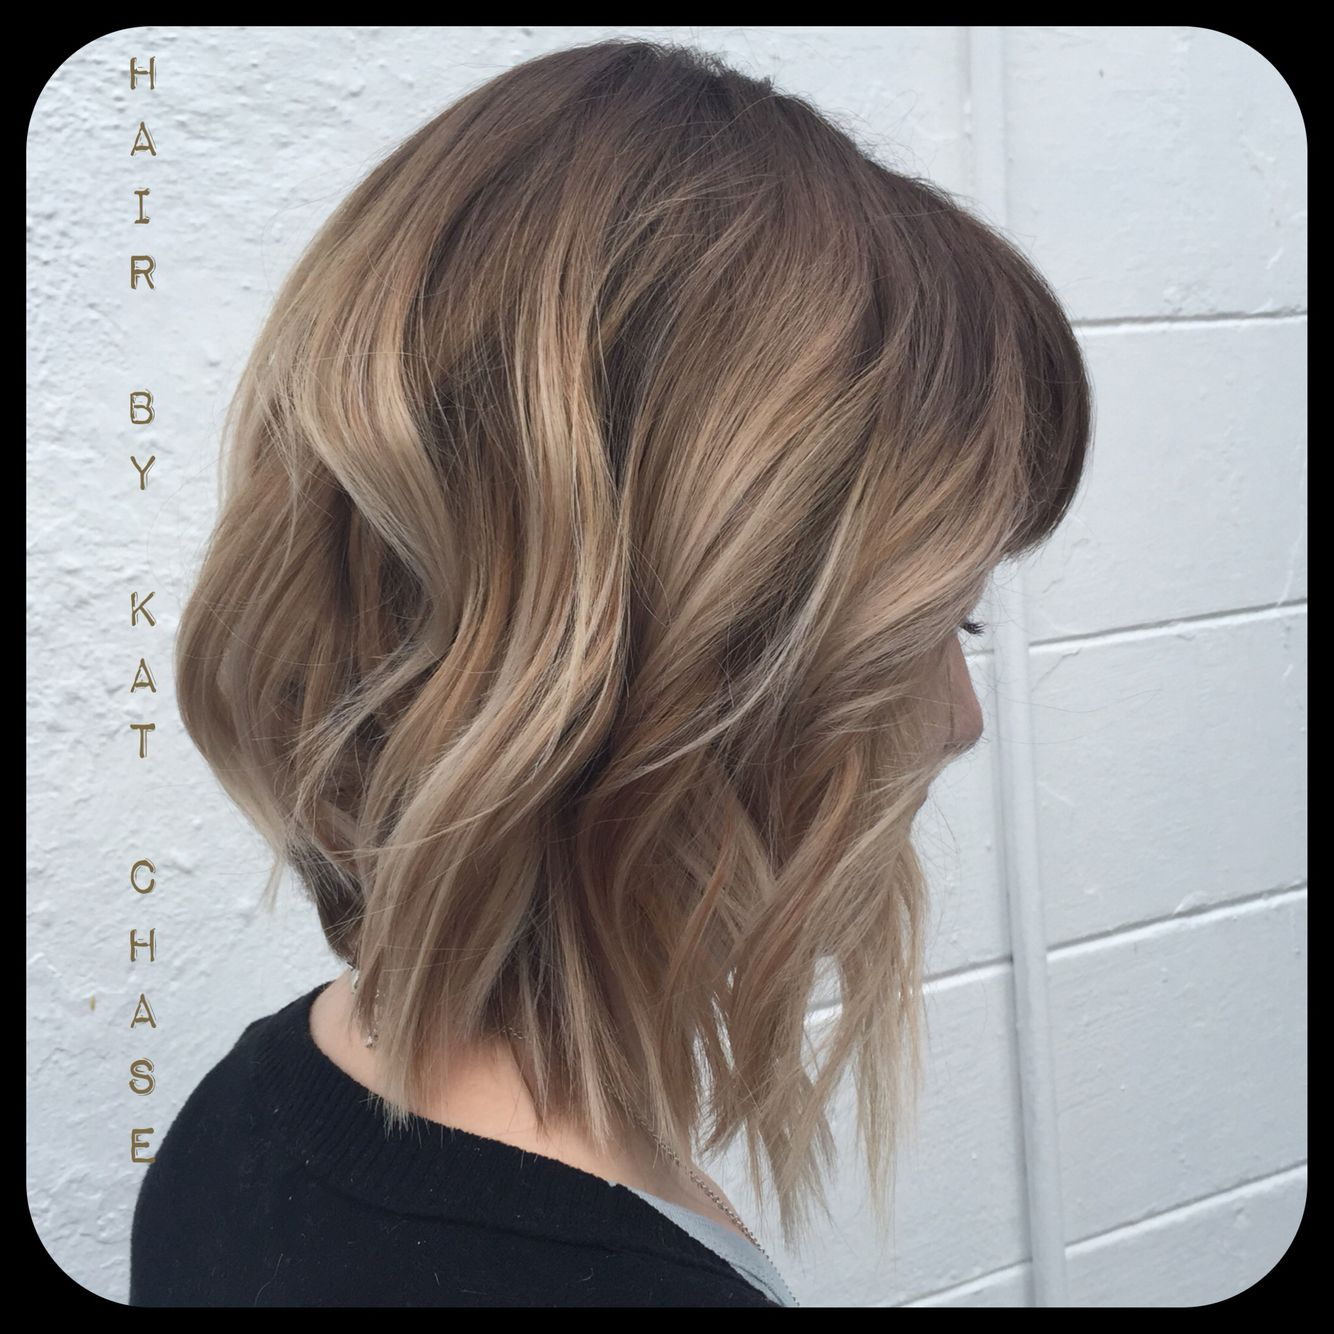 Ash Blonde Ombre On Short Hair Bob Hairstyles Hair Styles Short Hair Styles